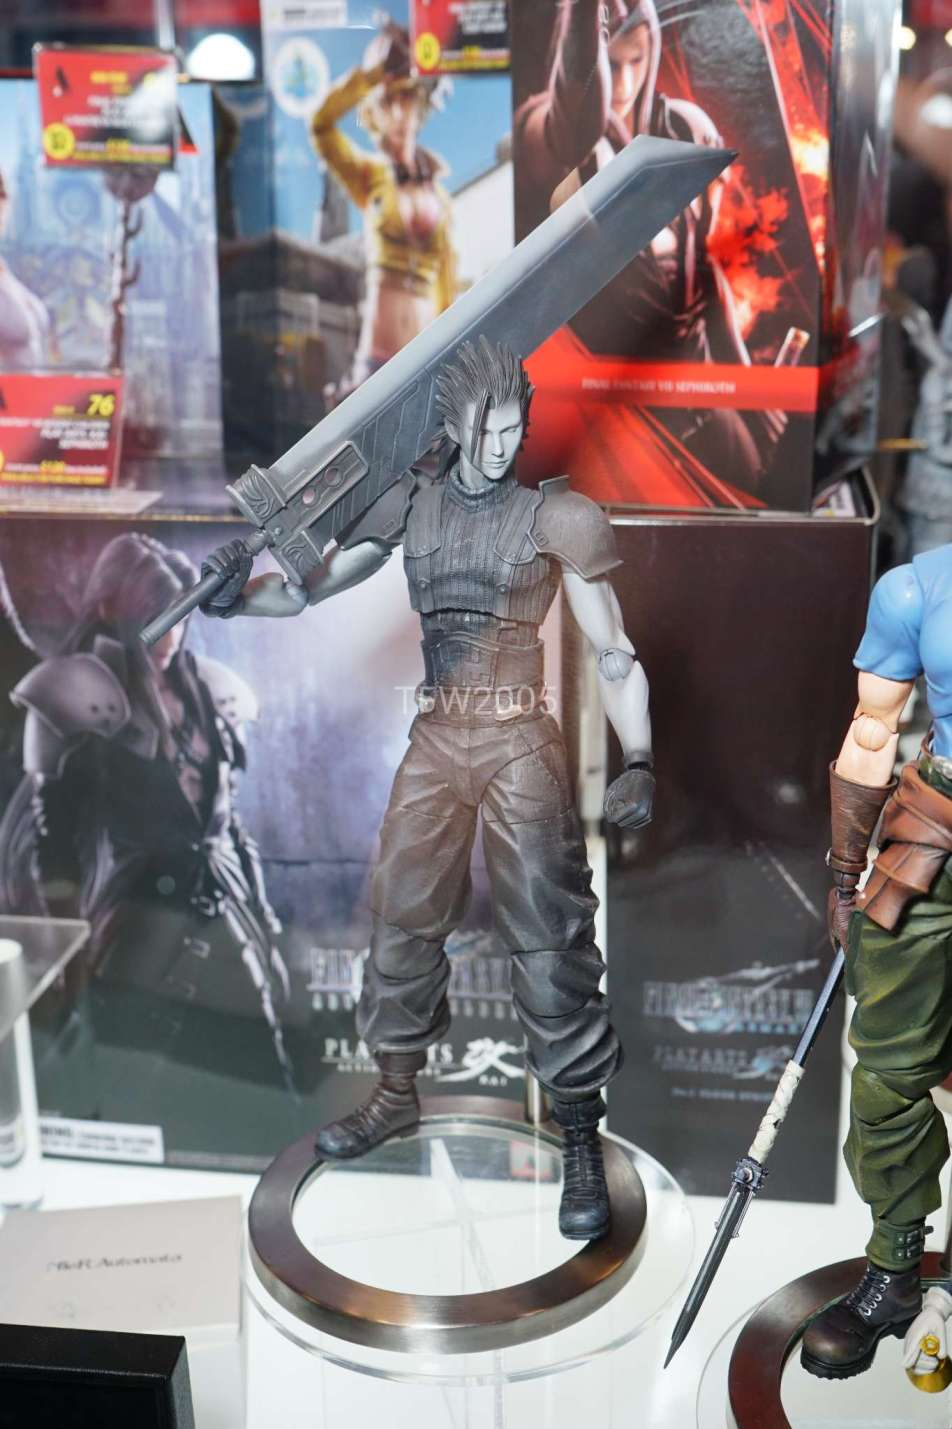 zack fair play arts kai 1